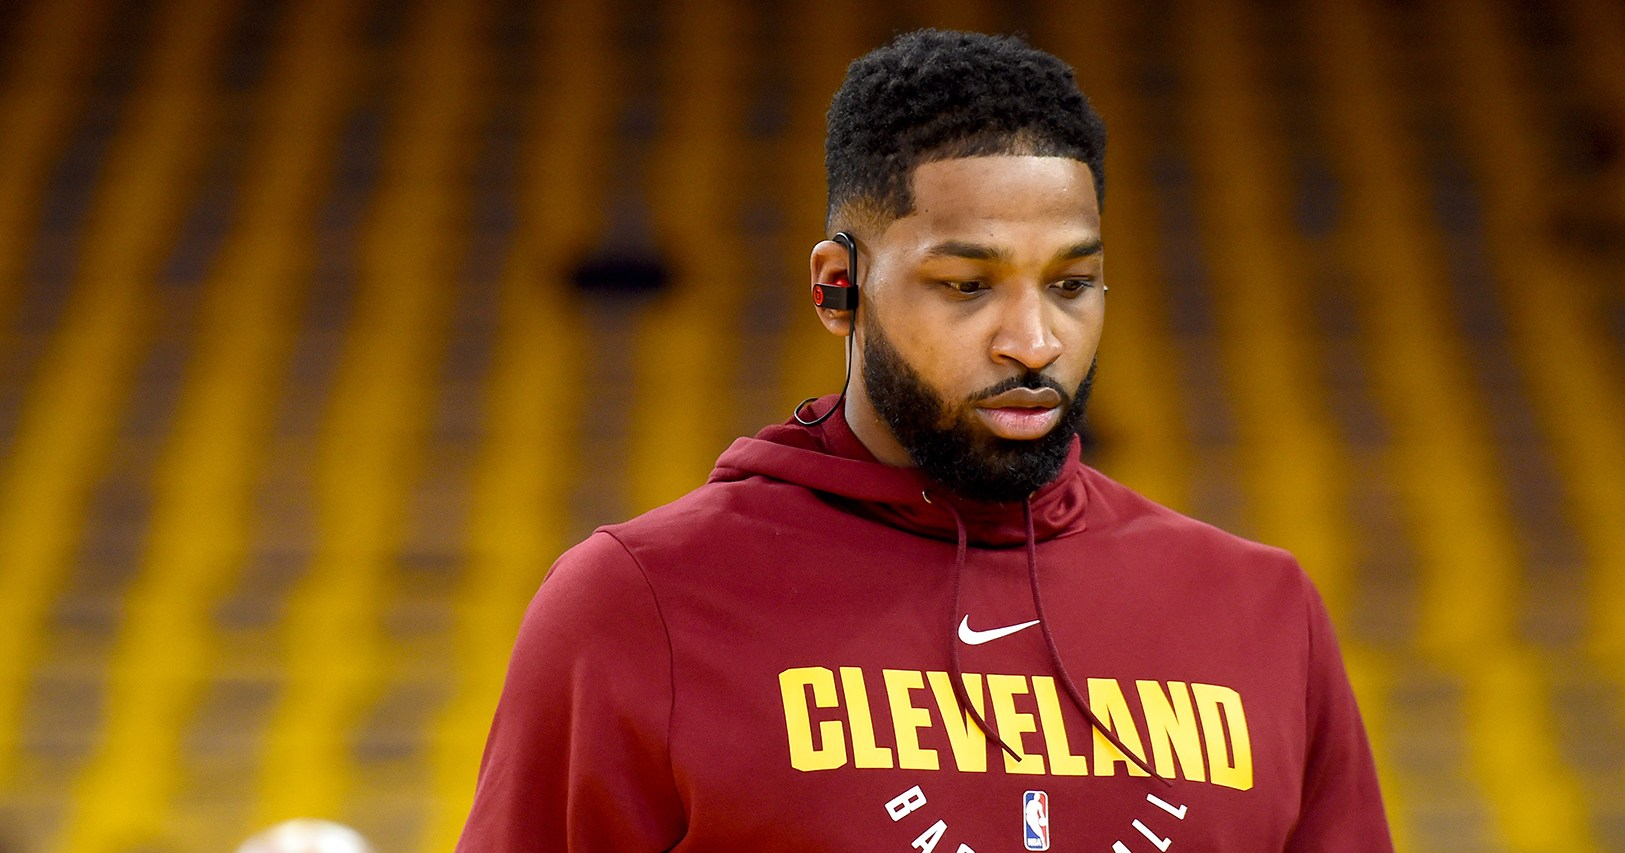 Khloe Kardashian's BF Tristan Thompson Gets Into a Fight During NBA Finals